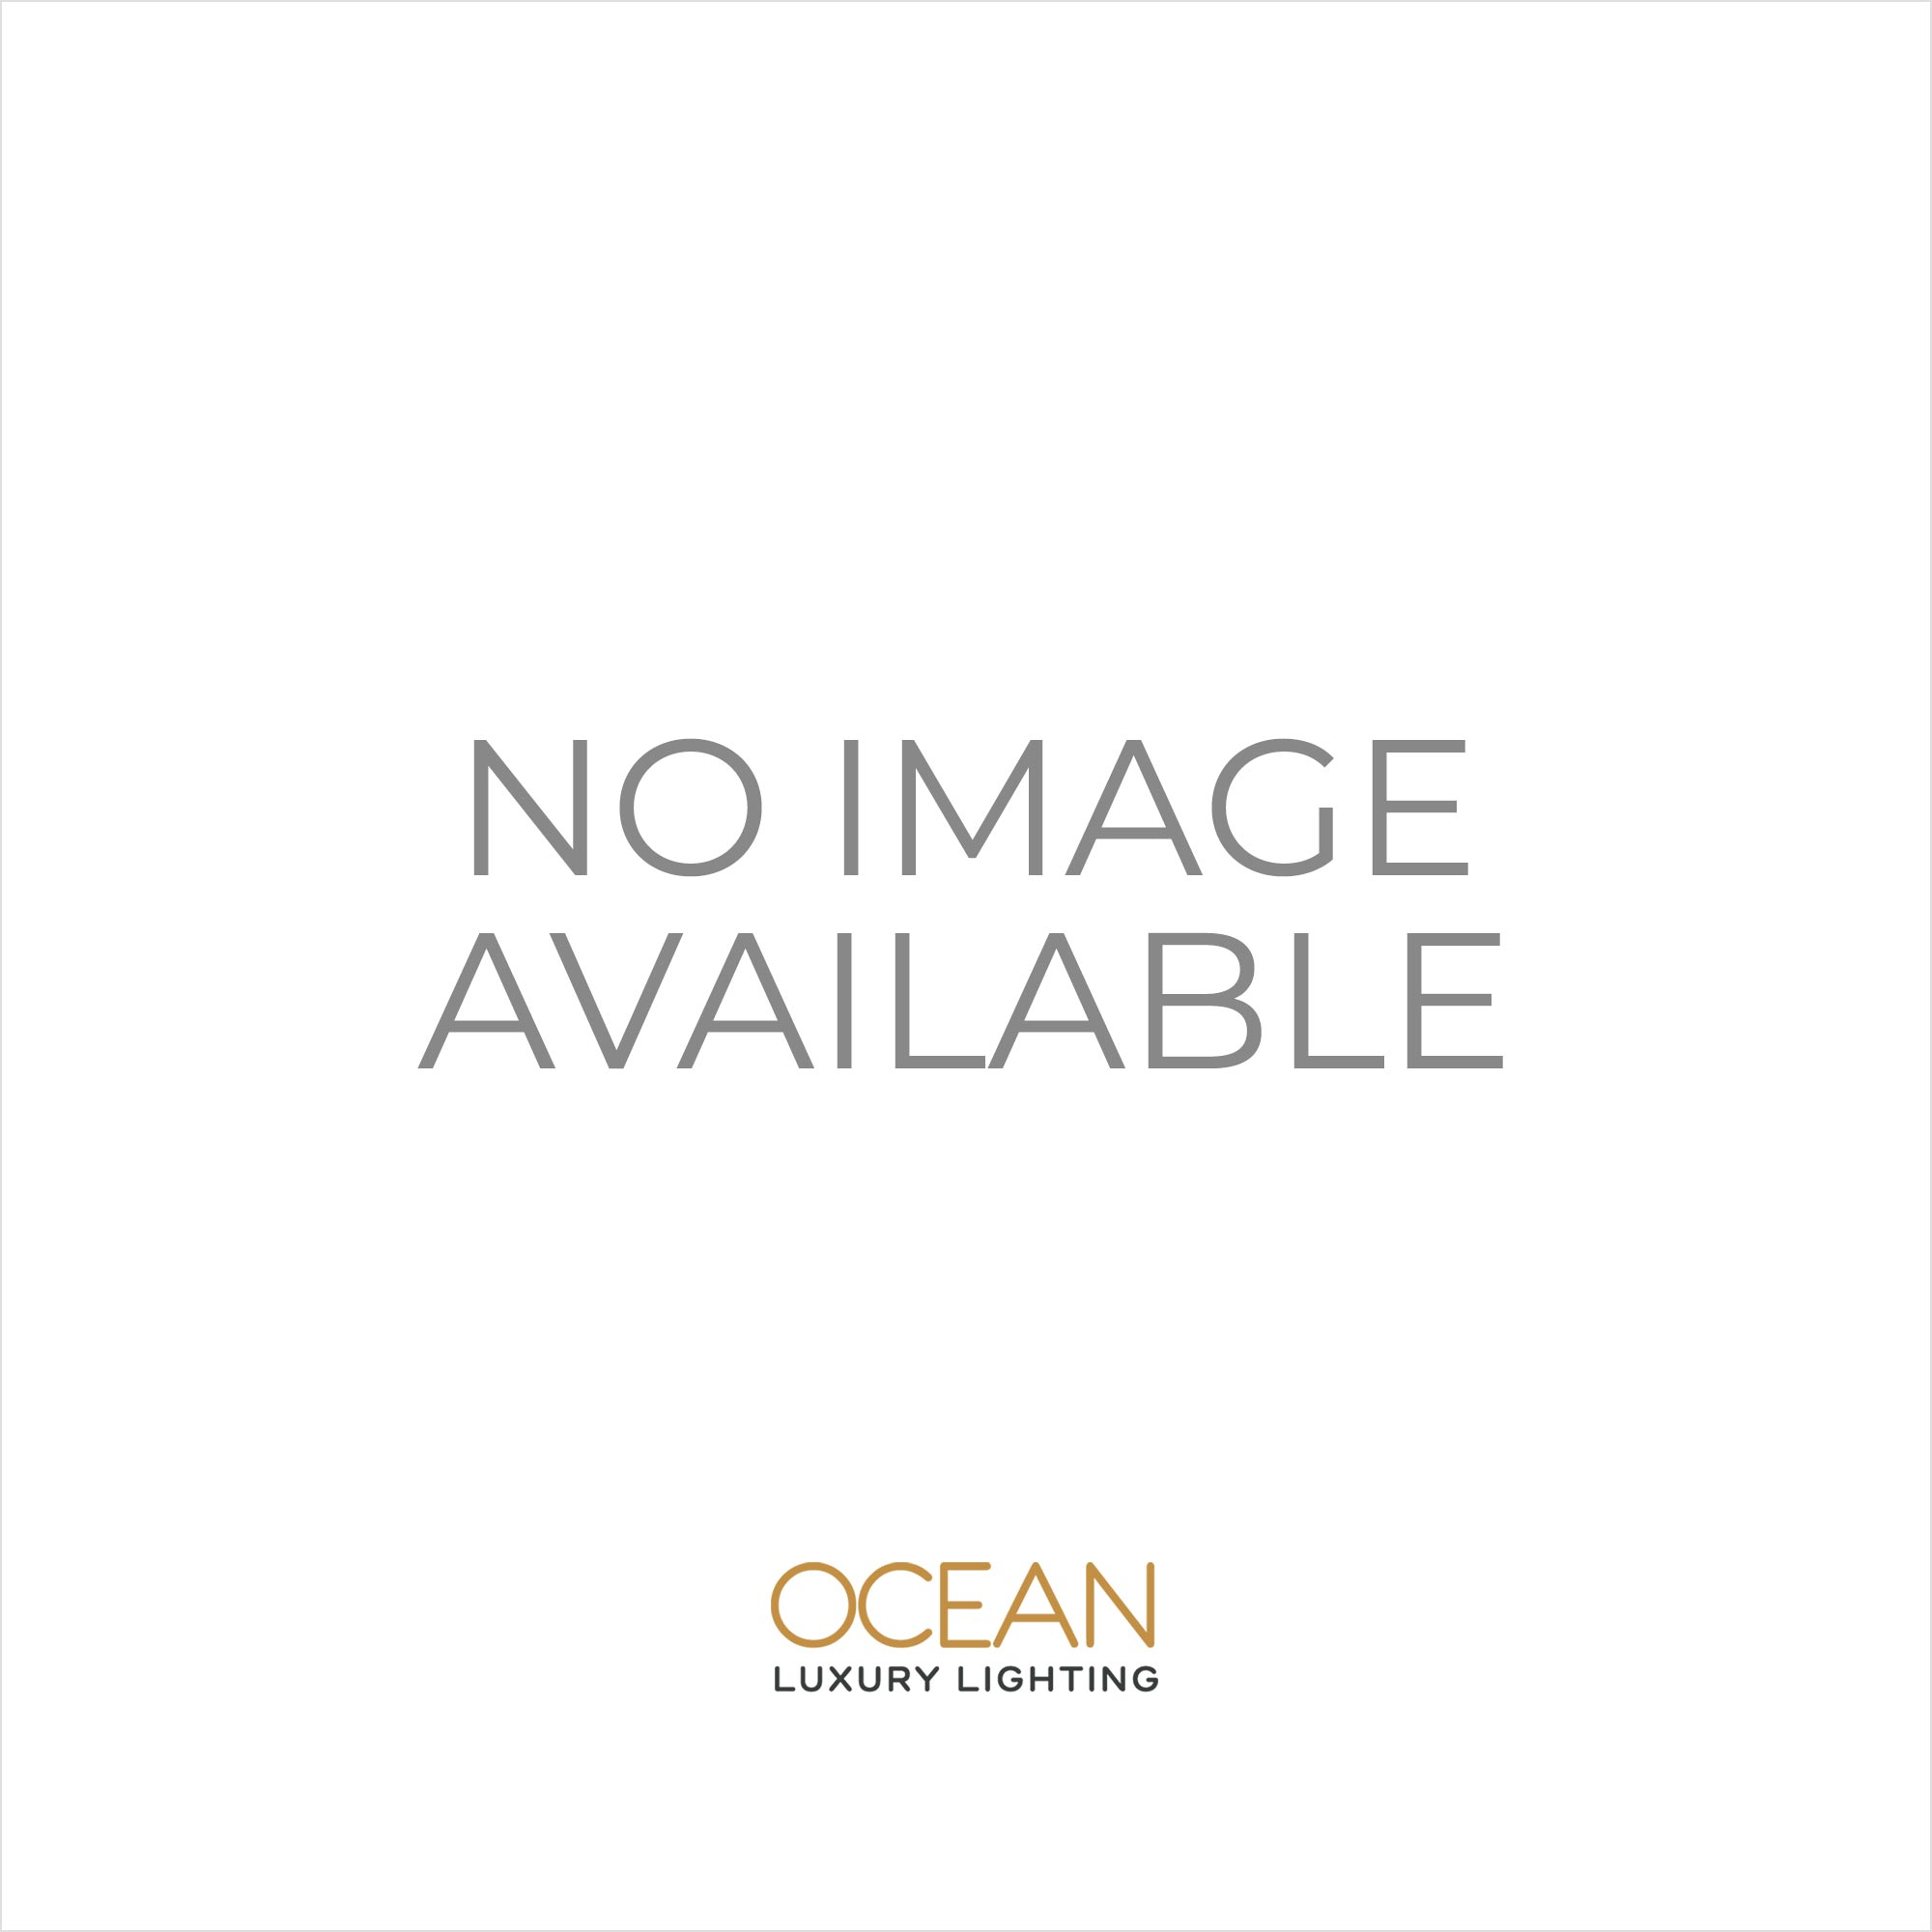 Dar RIG5046/28LE Riga 1 light modern bathroom low energy ceiling light flush satin chrome finish ip44 rated